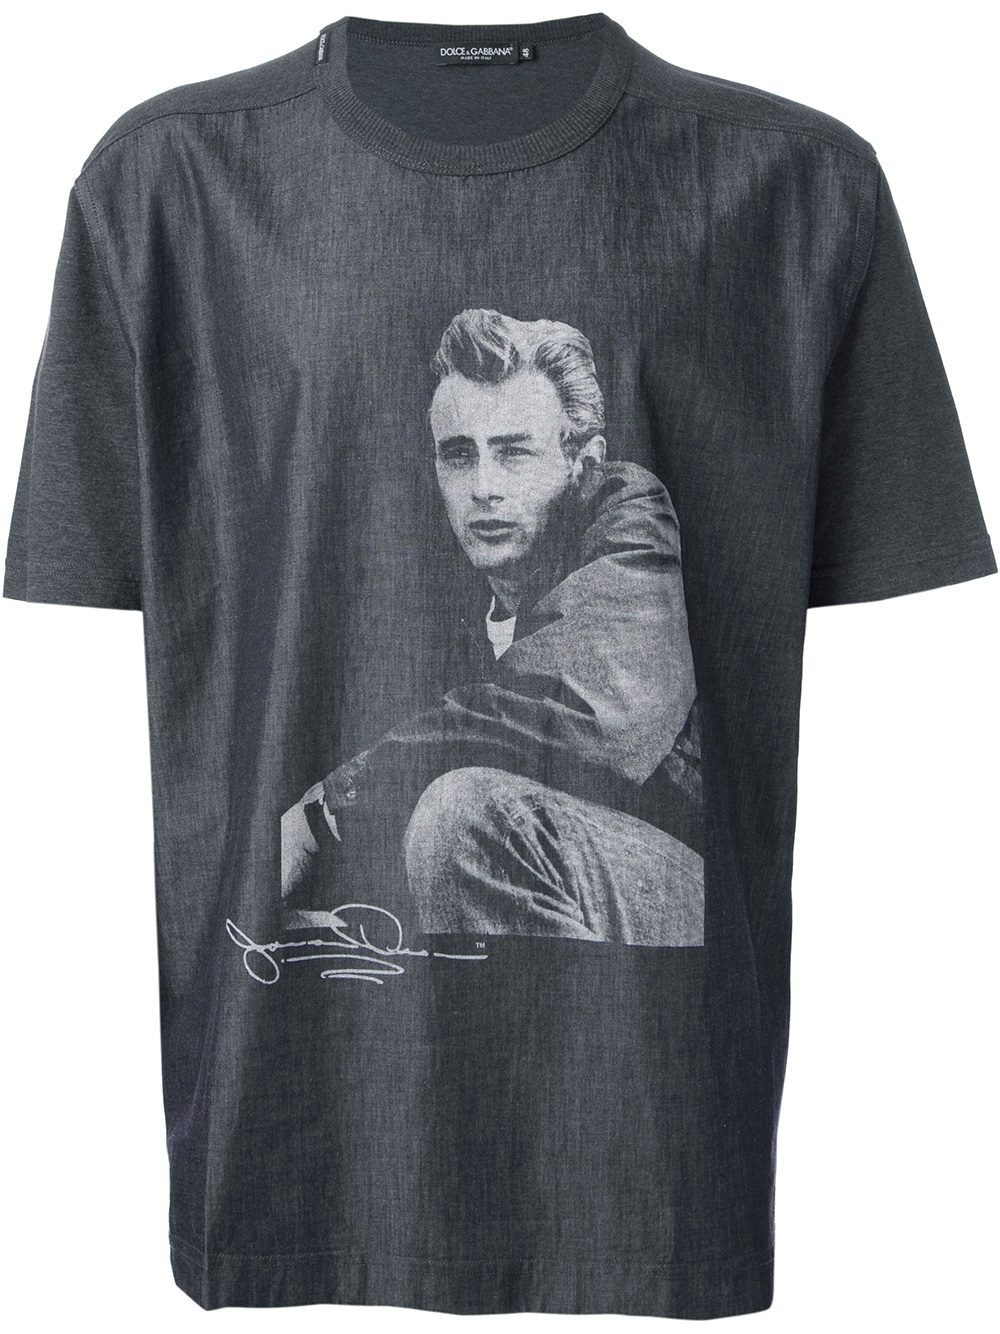 0c364488c91bc8 Dolce & Gabbana 'James Dean' T-Shirt in Blue for Men - Lyst